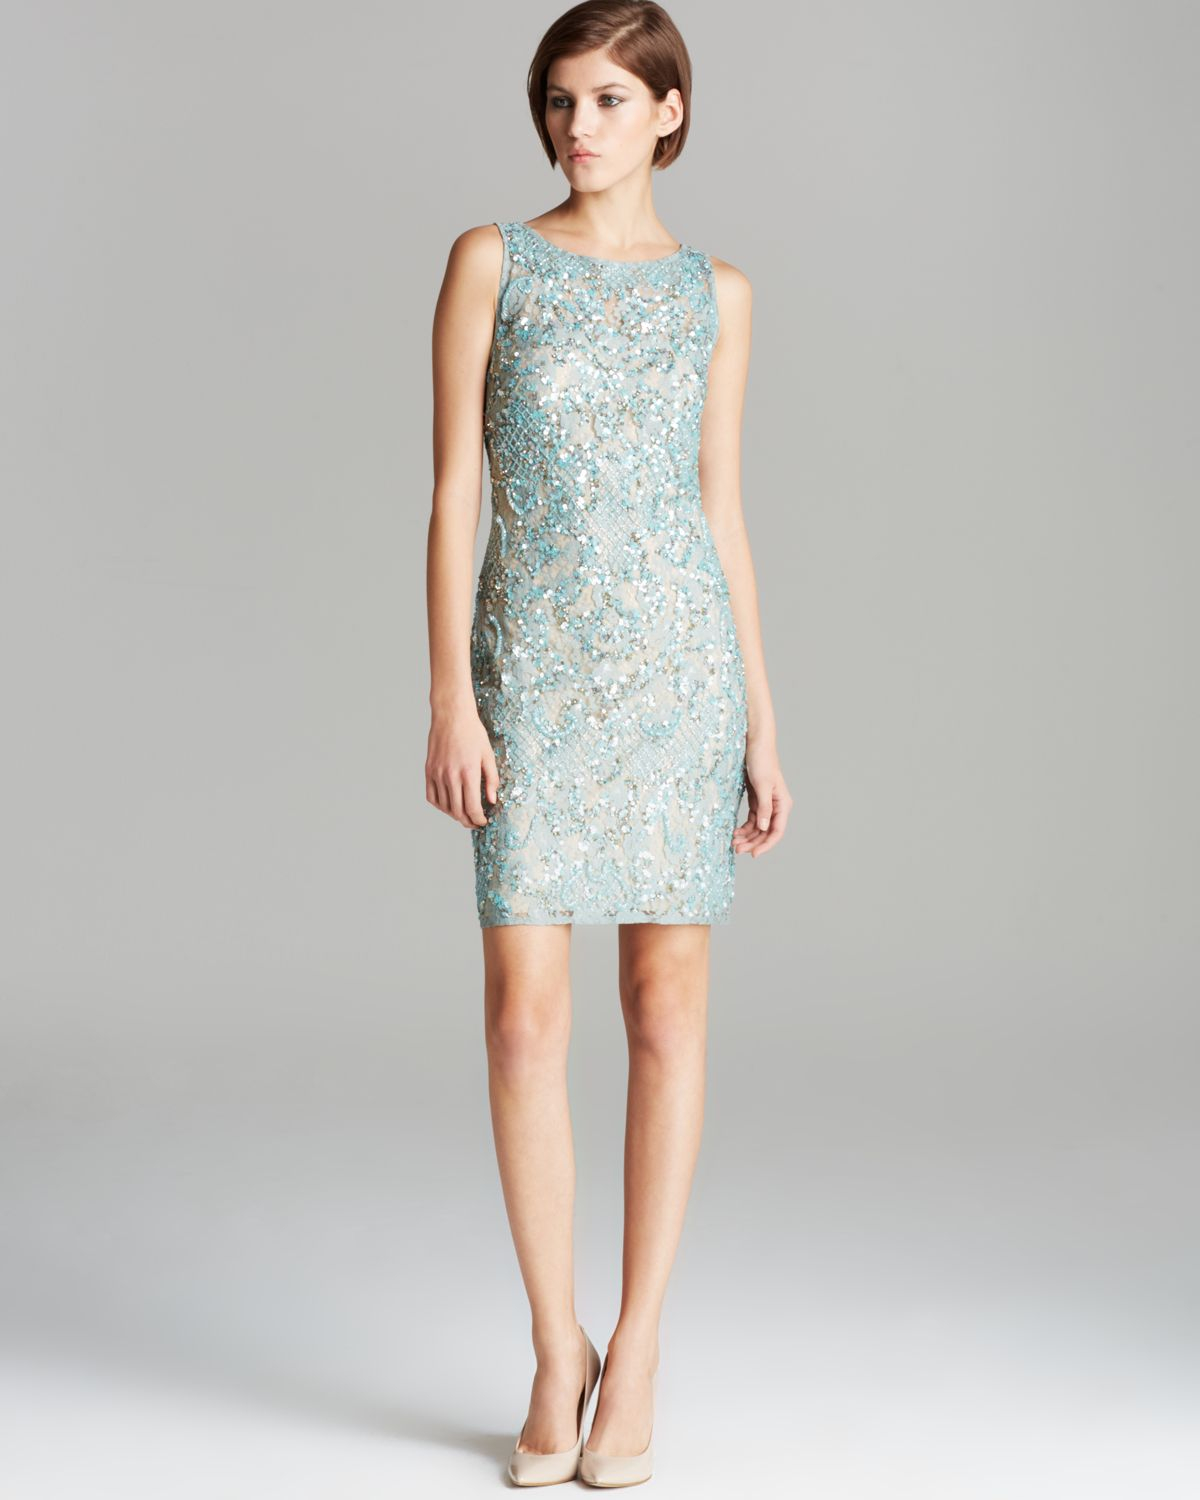 Aidan mattox Dress Sleeveless Beaded Lace in Green | Lyst